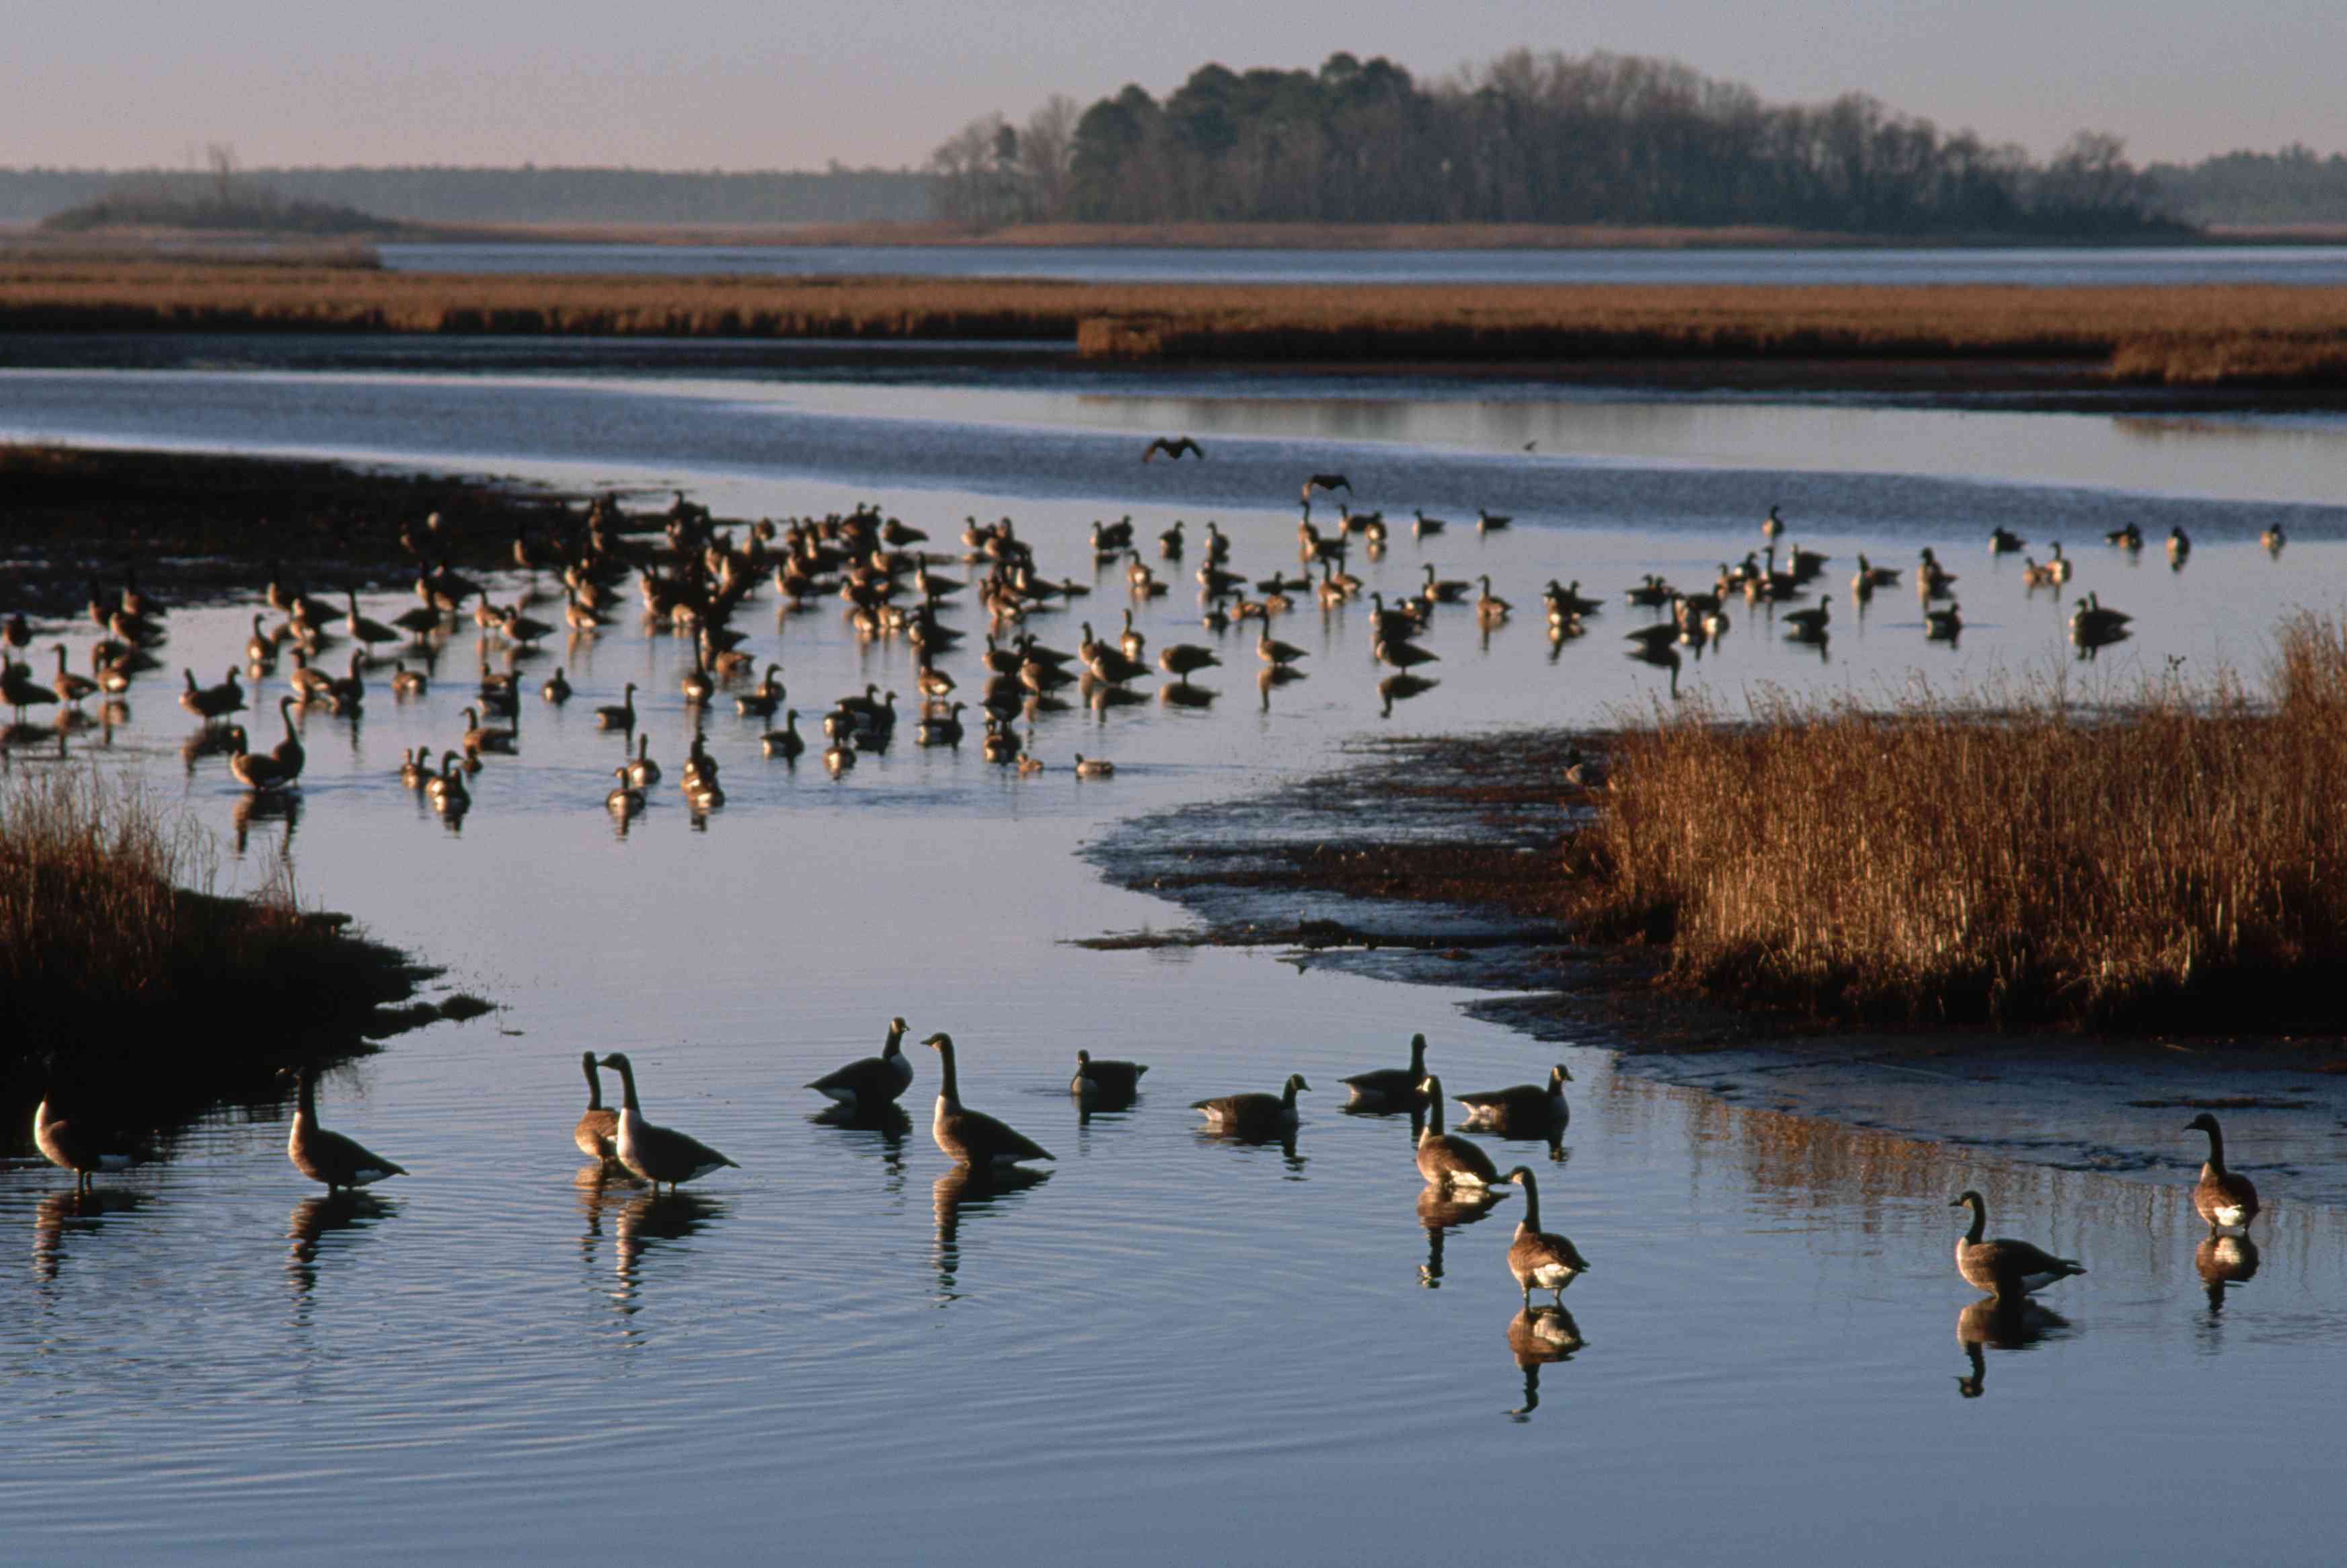 Canada geese in a salt marsh at Blackwater National Wildlife Refuge, Maryland